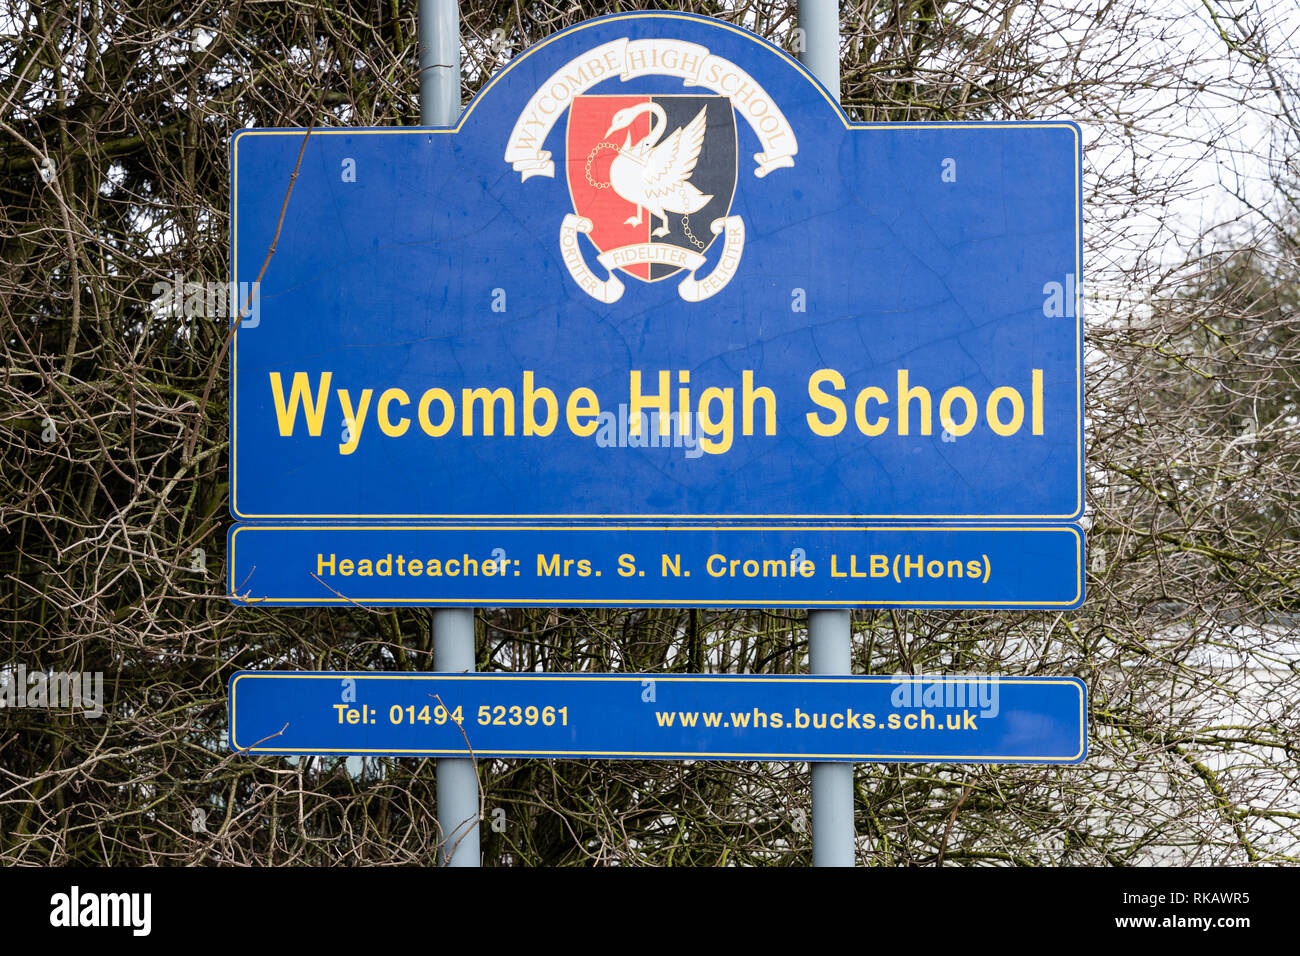 Signpost with a school name and crest at the entrance to the Wycombe High School (girls grammar school) from the Marlow Road.  High Wycombe, UK. - Stock Image